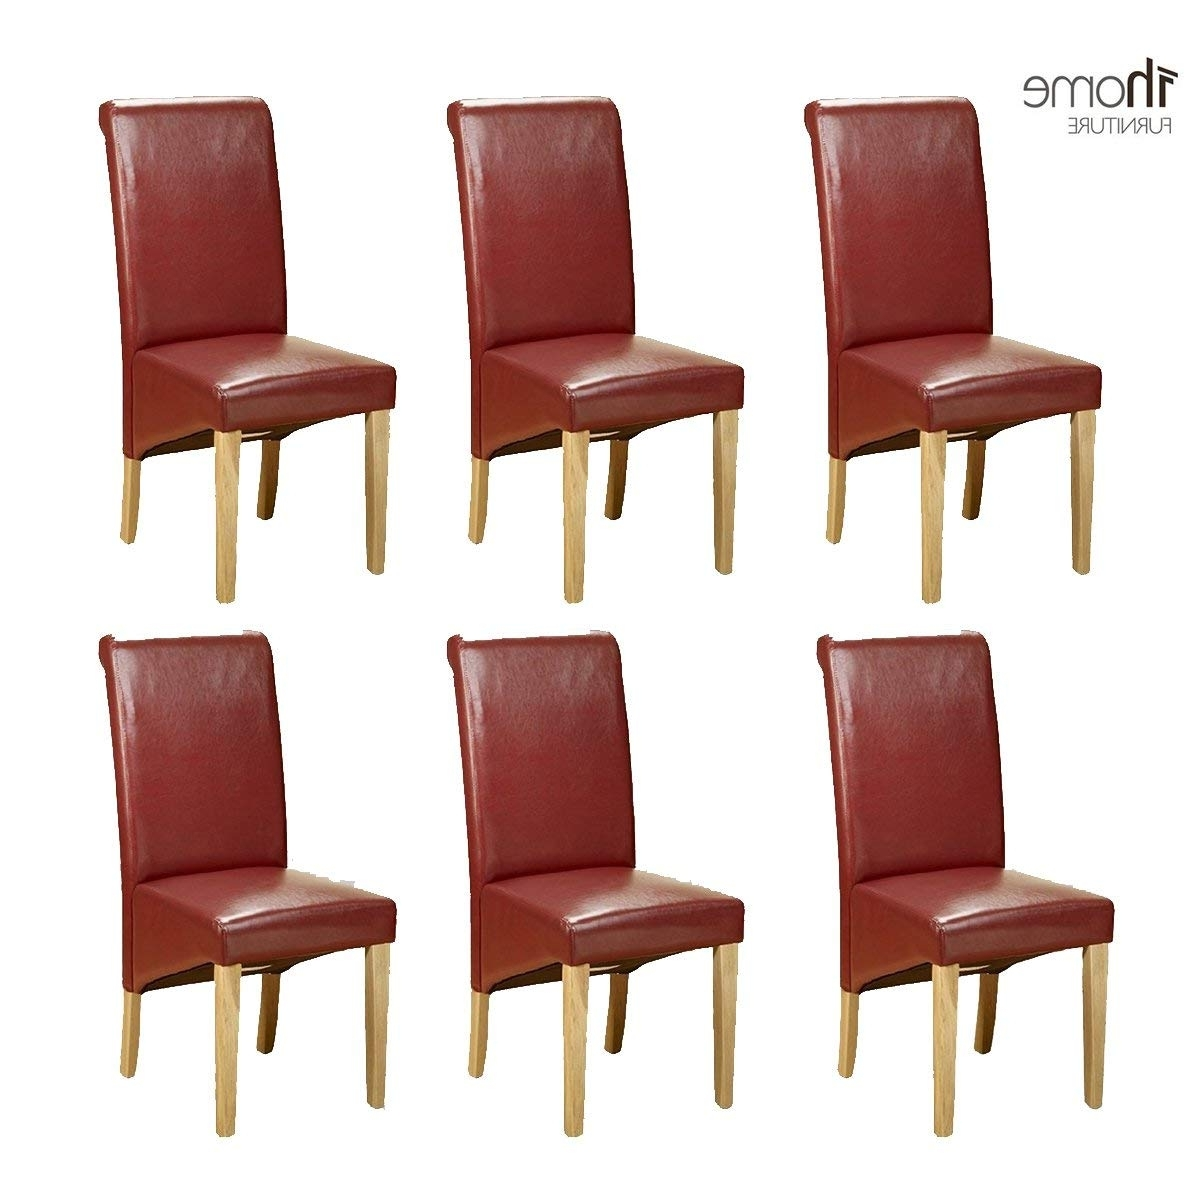 1Home 6 X Leather Red Dining Chair W Oak Finish Wood Legs Roll Top Inside Famous Red Dining Chairs (View 16 of 25)